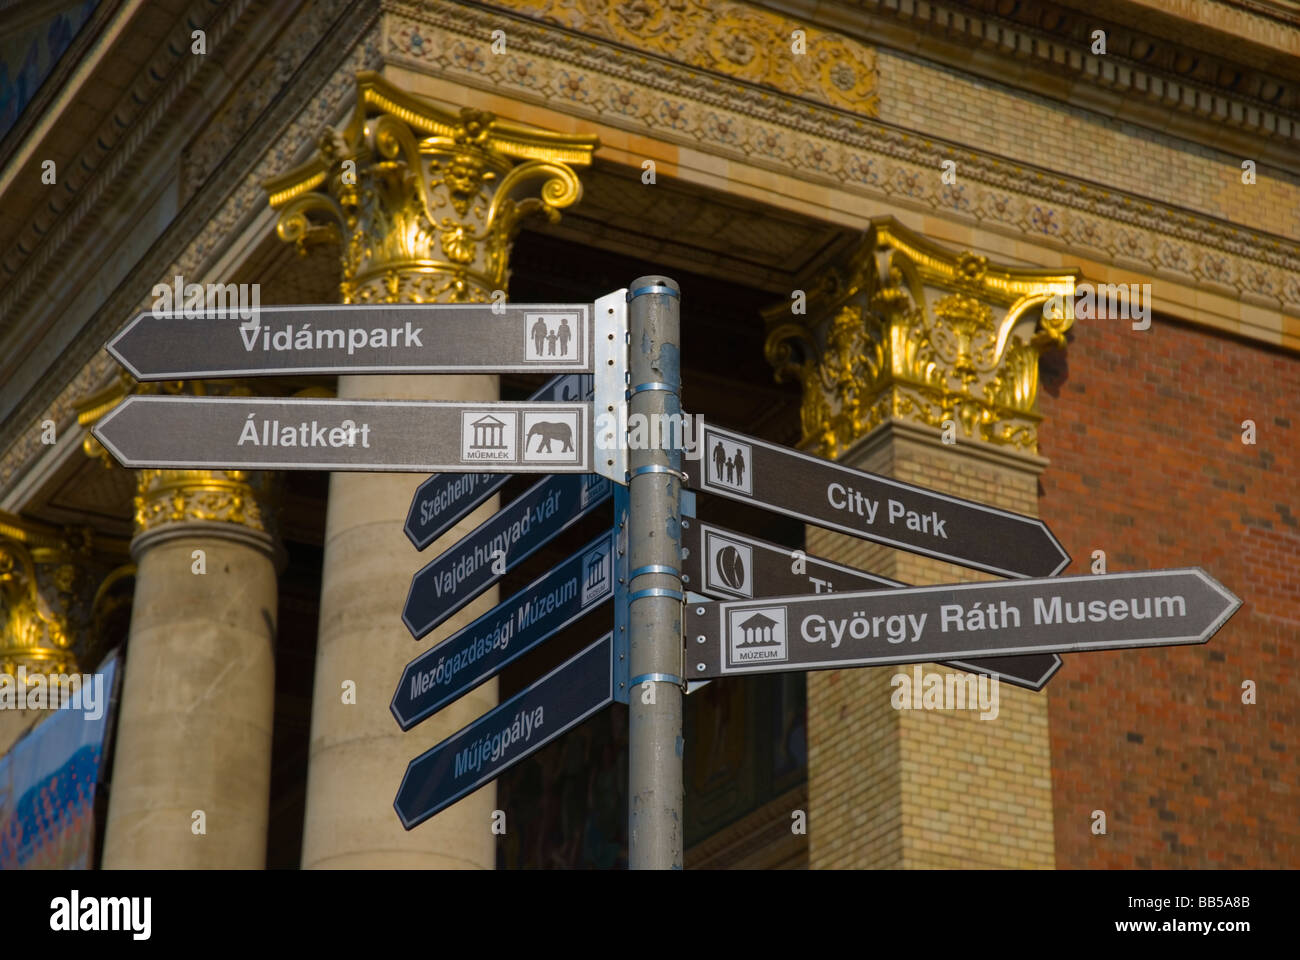 Signs at Hösök tere square in Budapest Hungary Europe - Stock Image